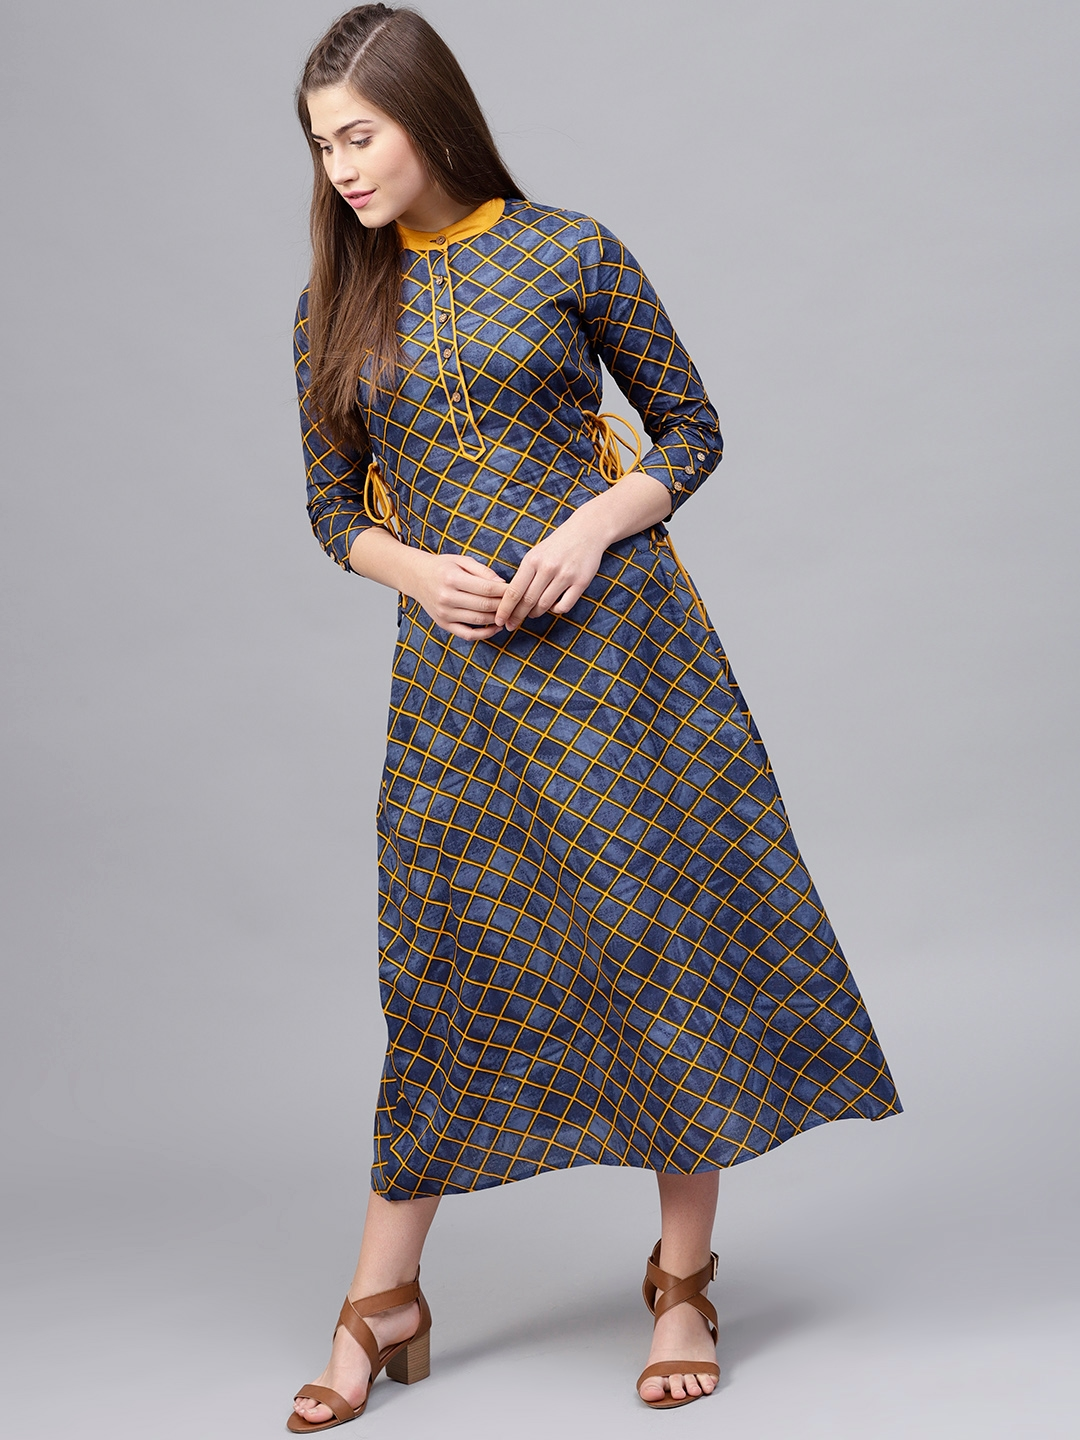 4daf5ce81b61 Buy Athena Women Navy Blue   Mustard Yellow Checked Maxi Dress ...